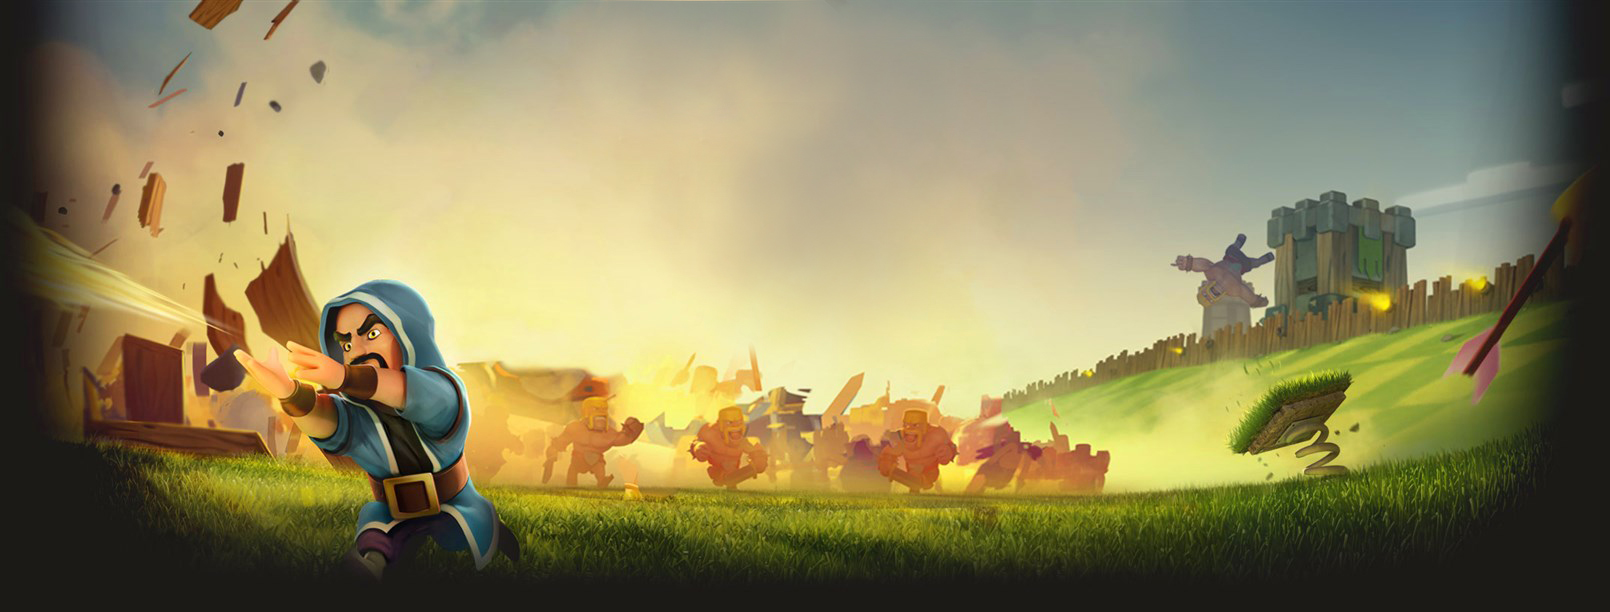 Clash Of Clans Background 1610x612